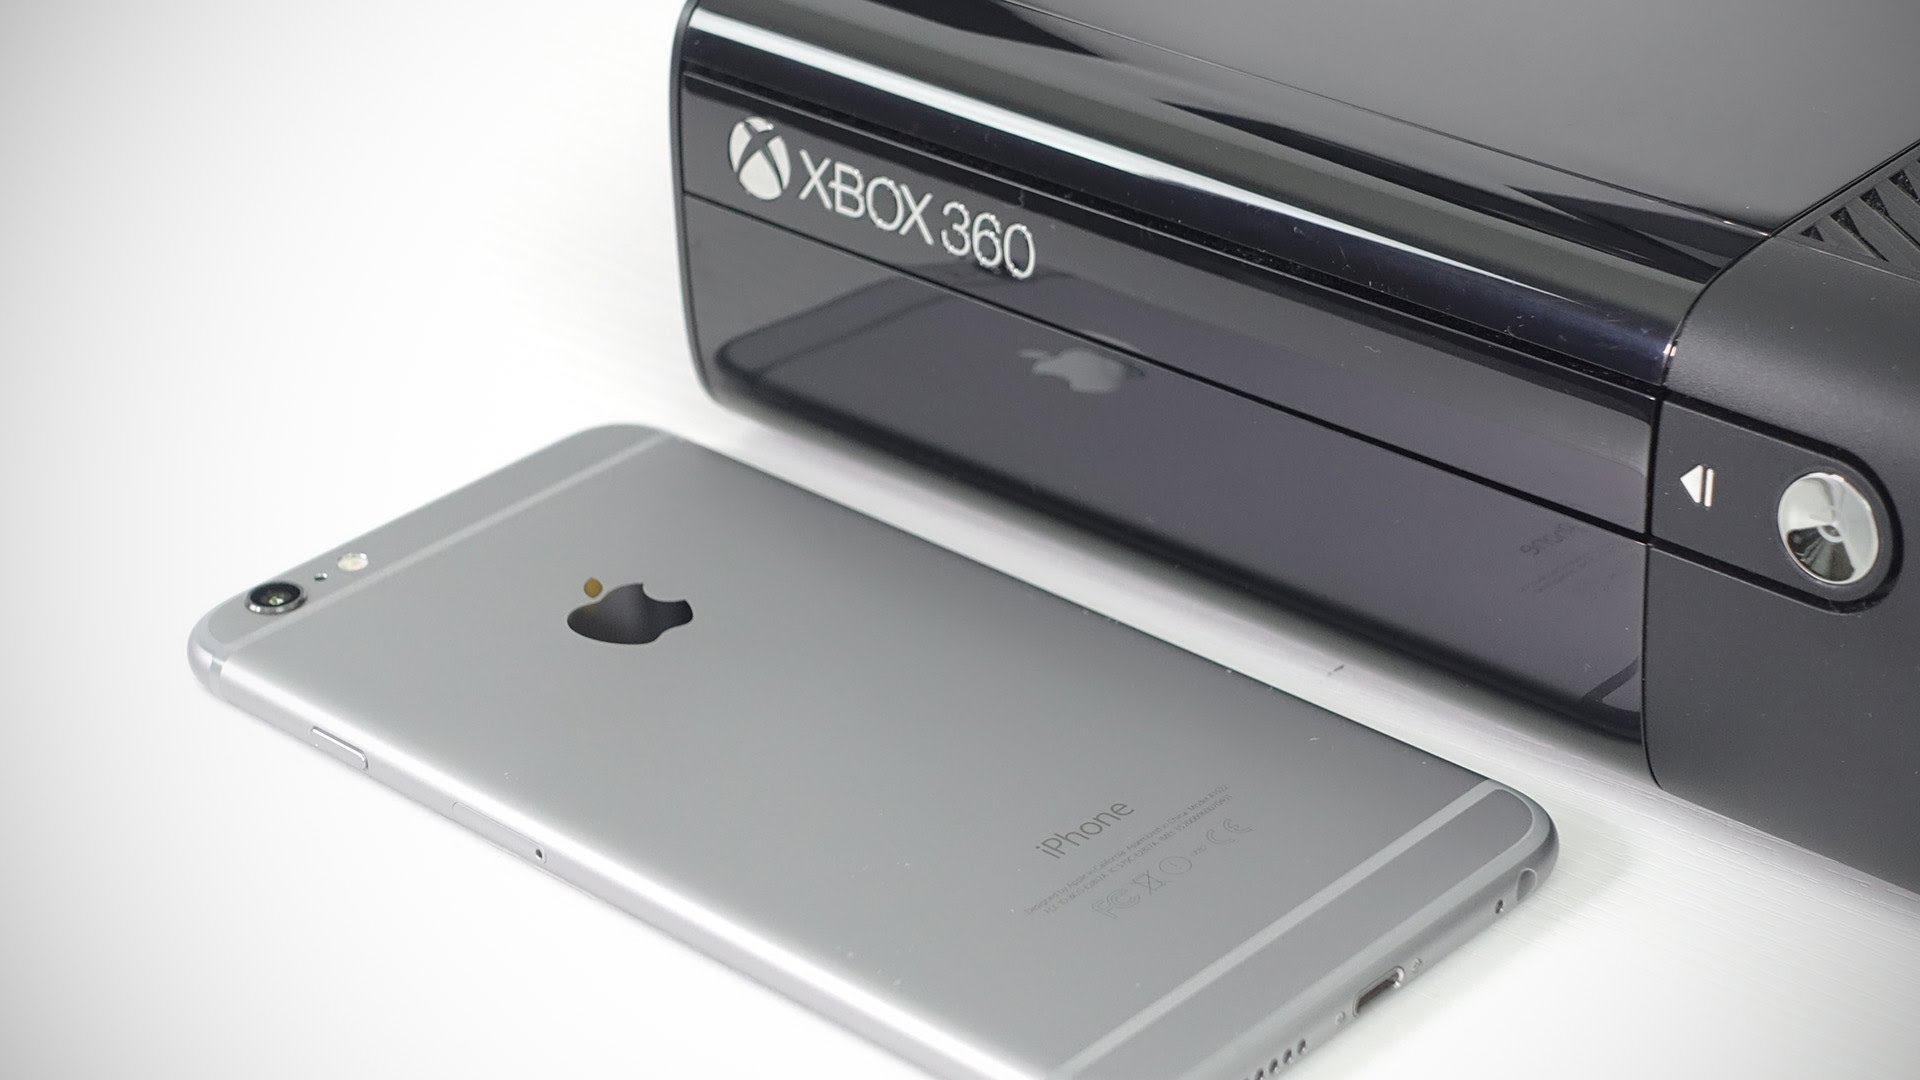 iPhone vs Xbox 360